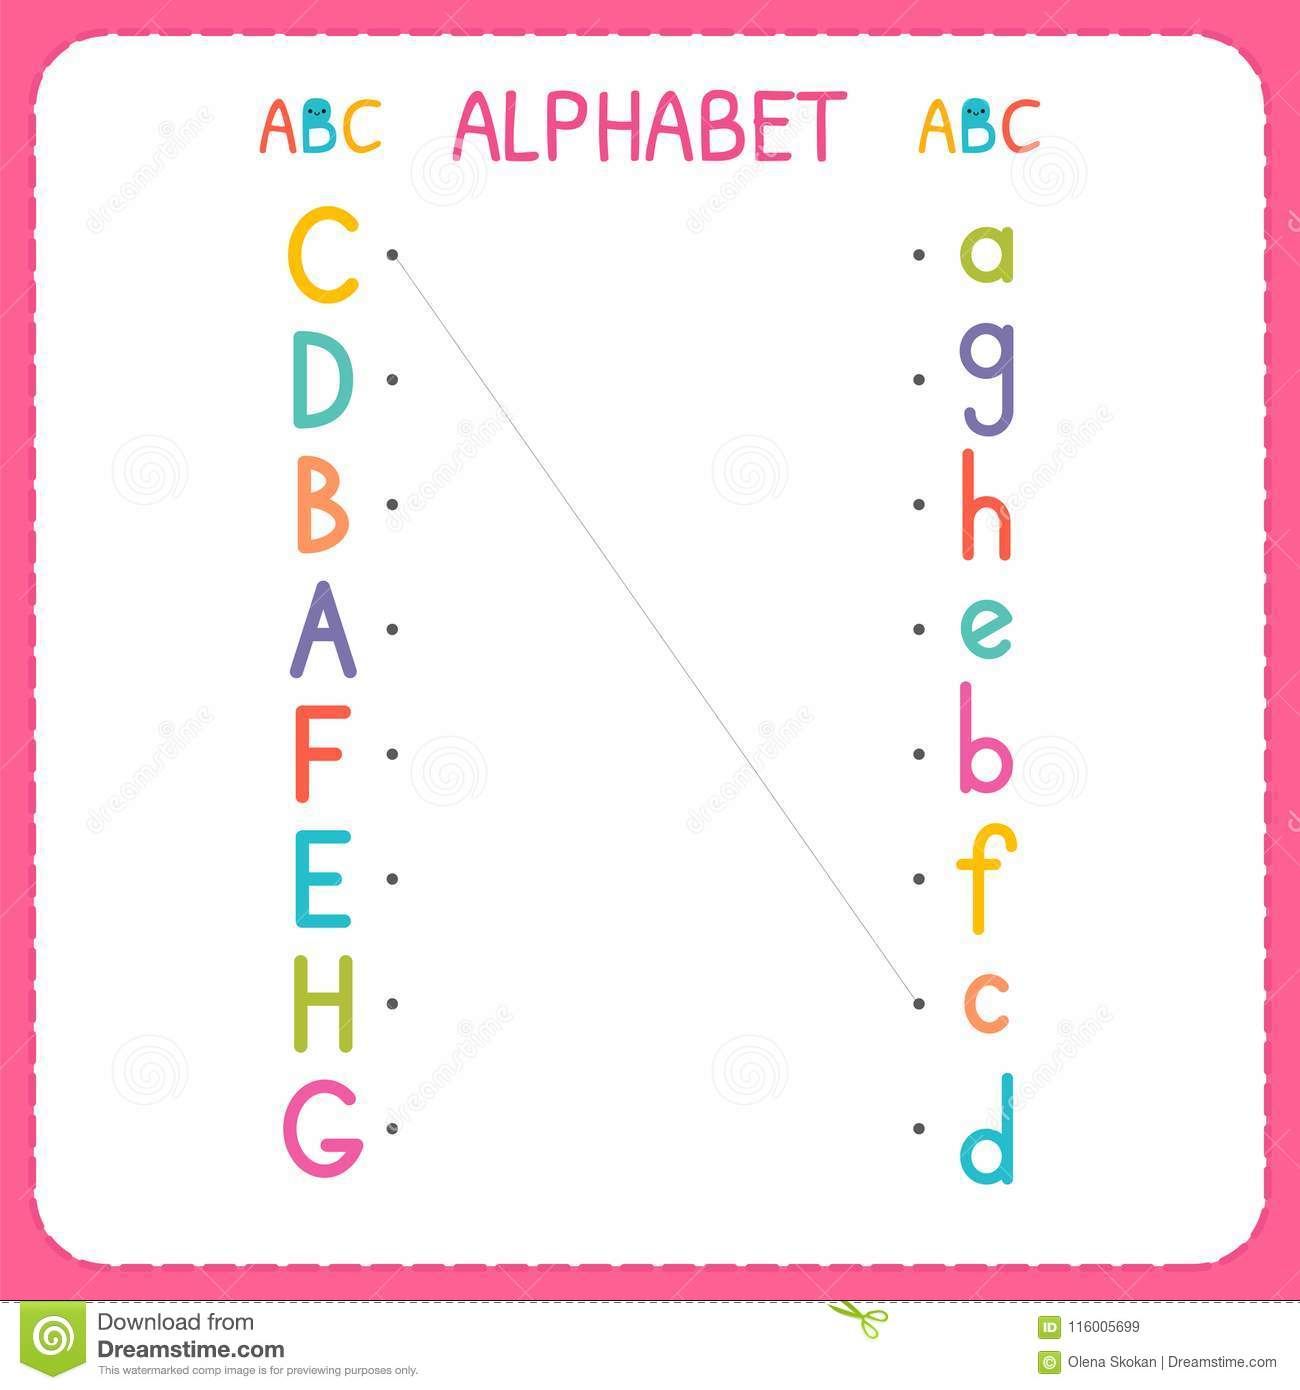 Join Each Capital Letter With The Lowercase Letter From A To H